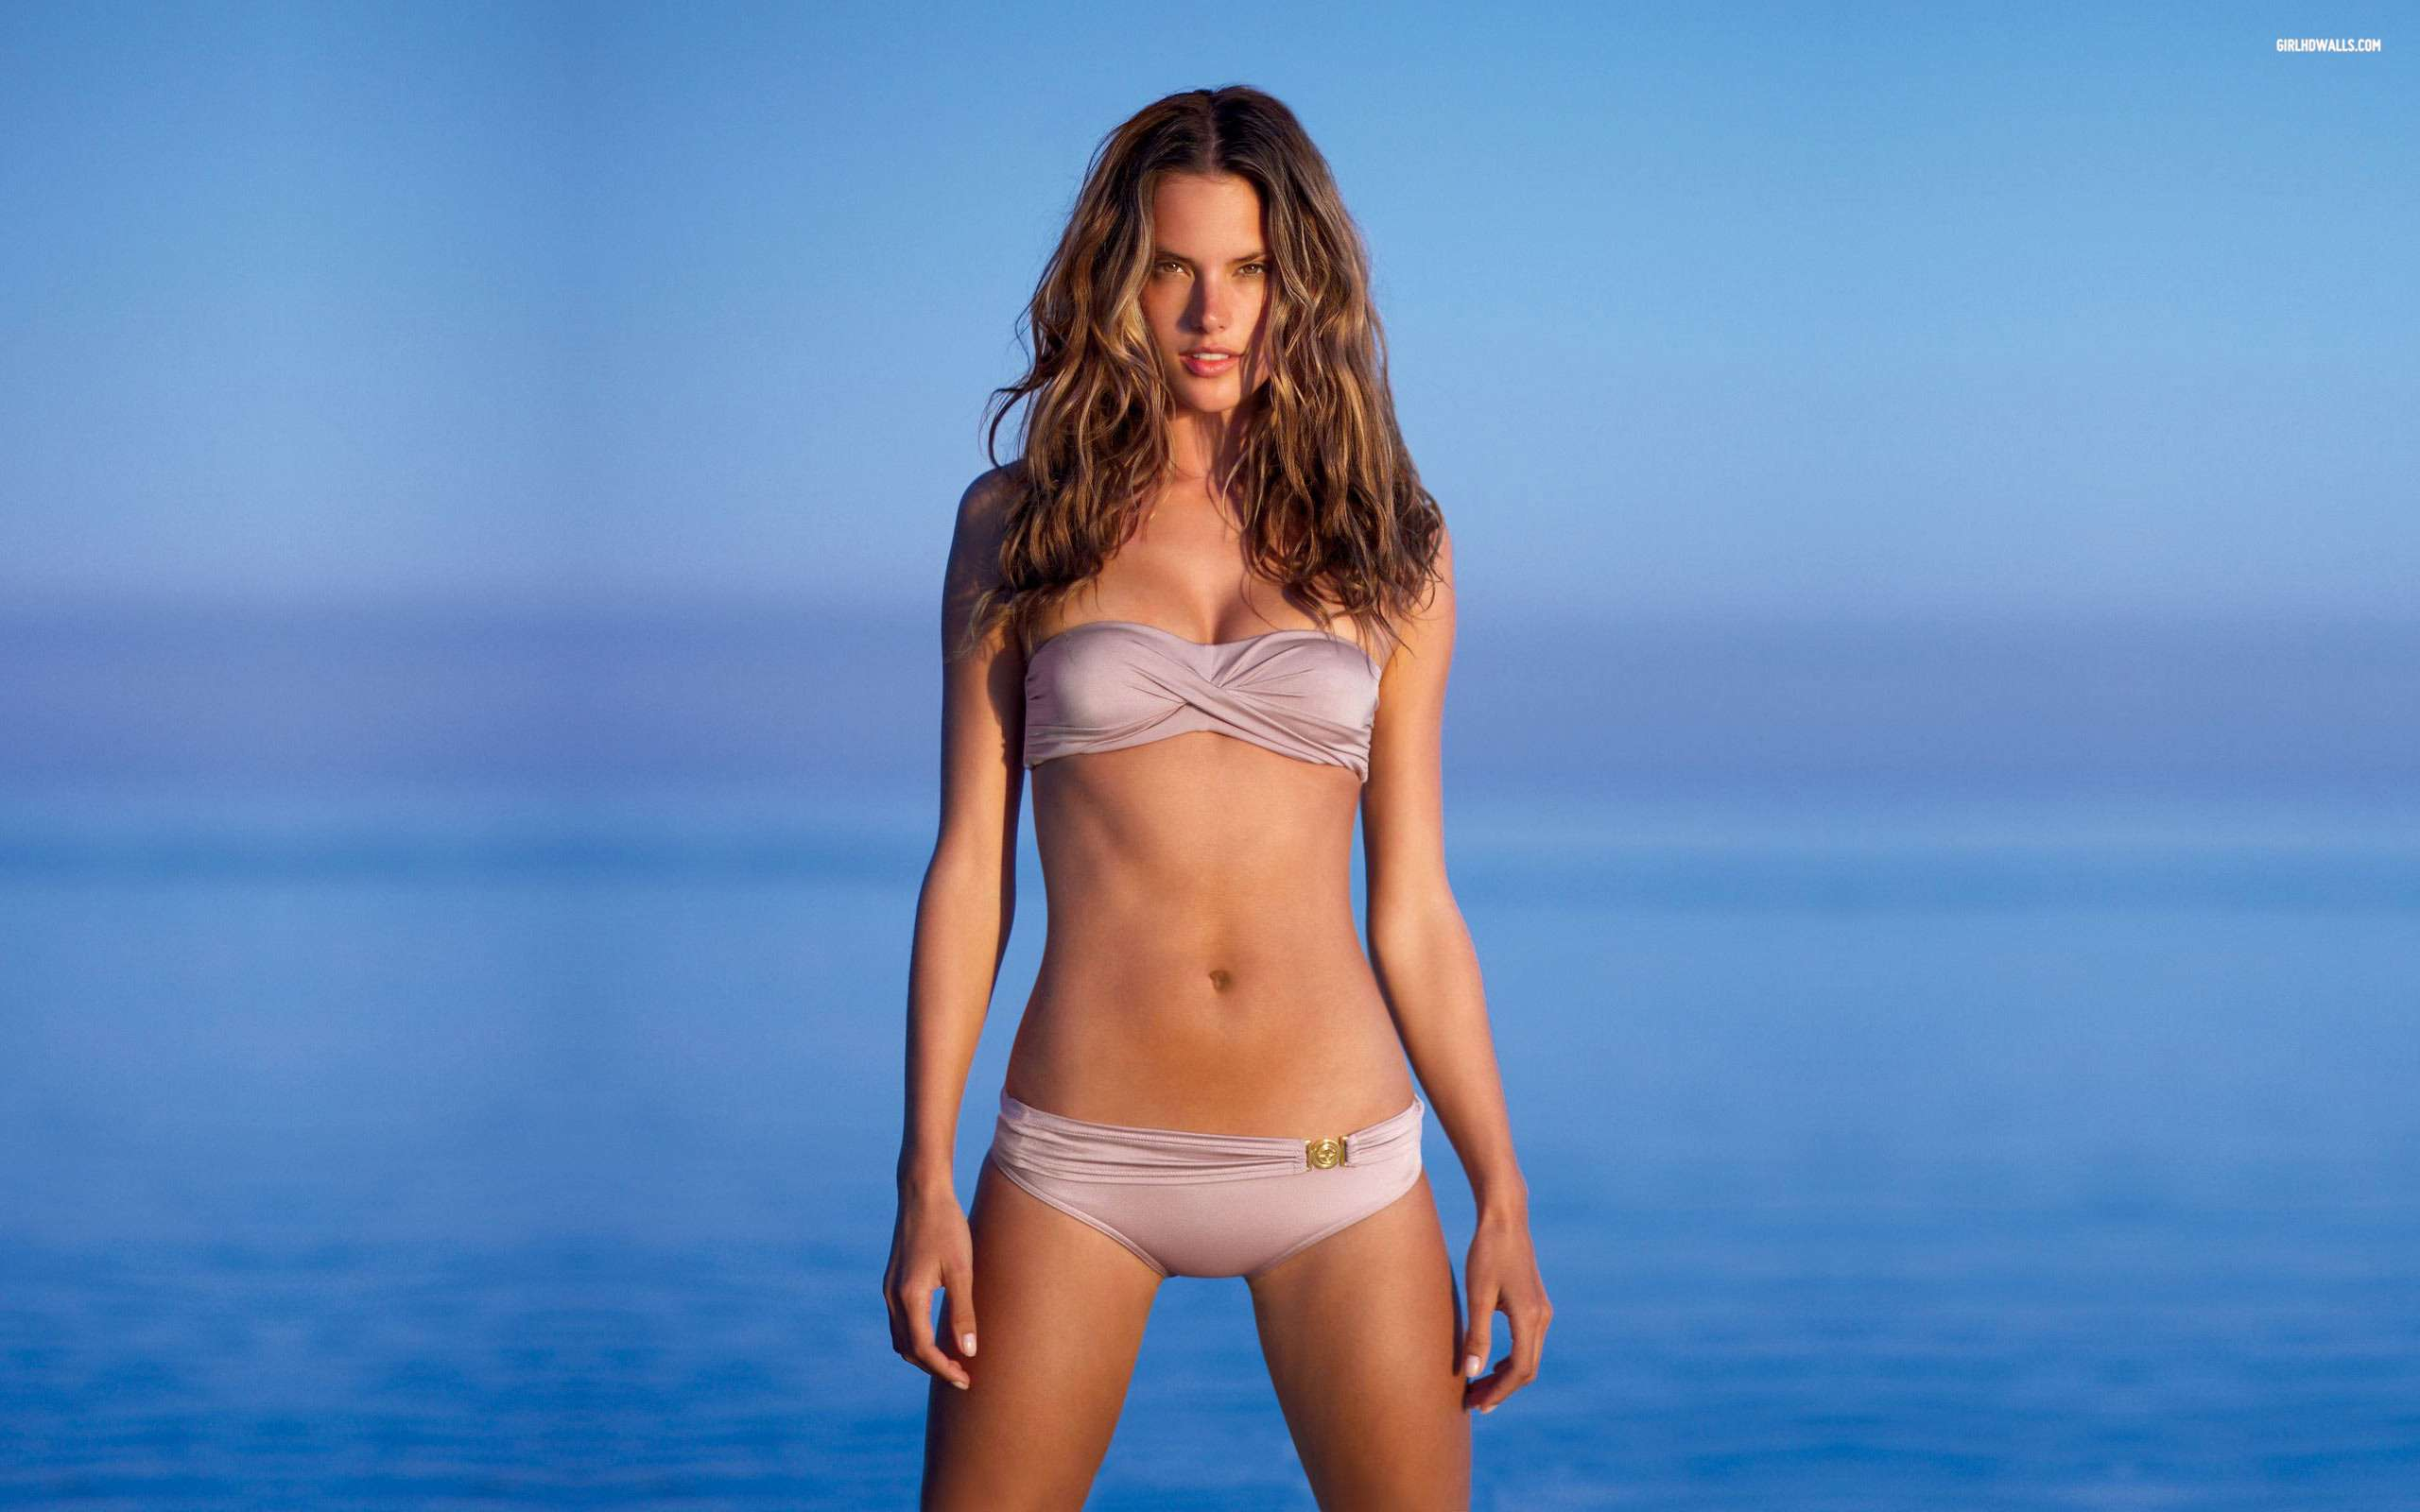 Alessandra Ambrosio 25 Wallpapers